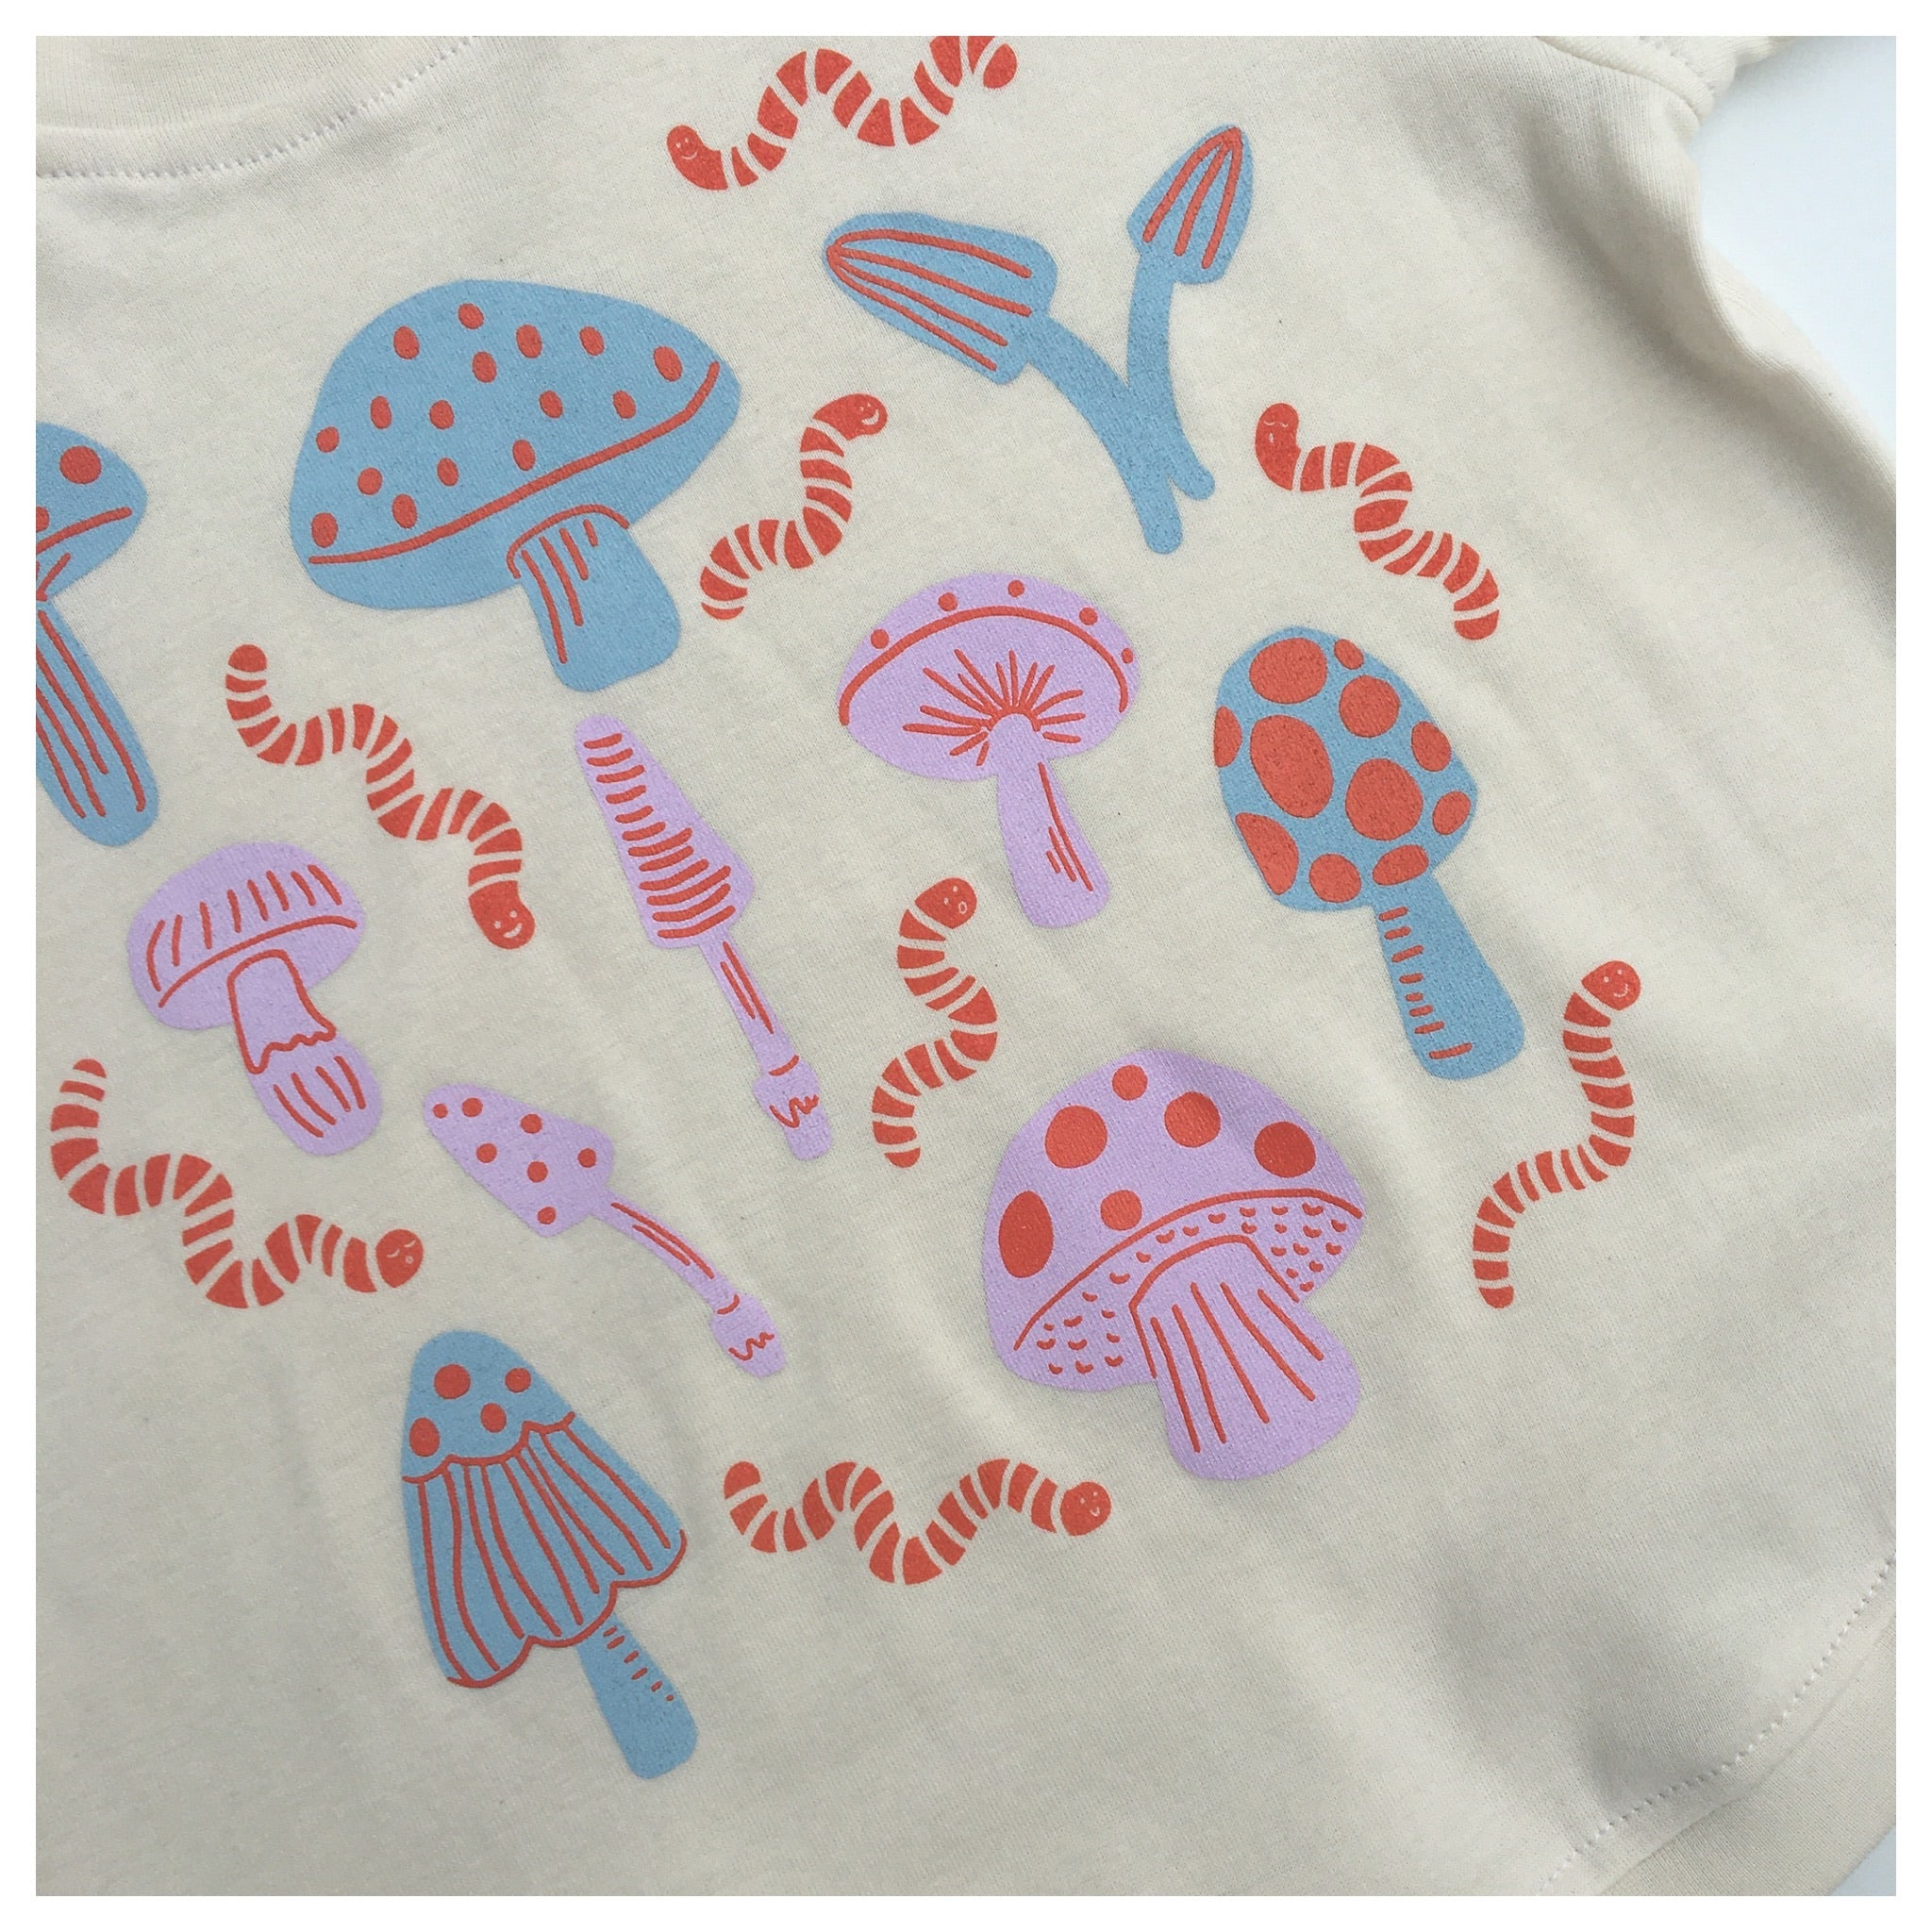 T-shirt Champignon en coton bio / Organic cotton mushroom T-shirt